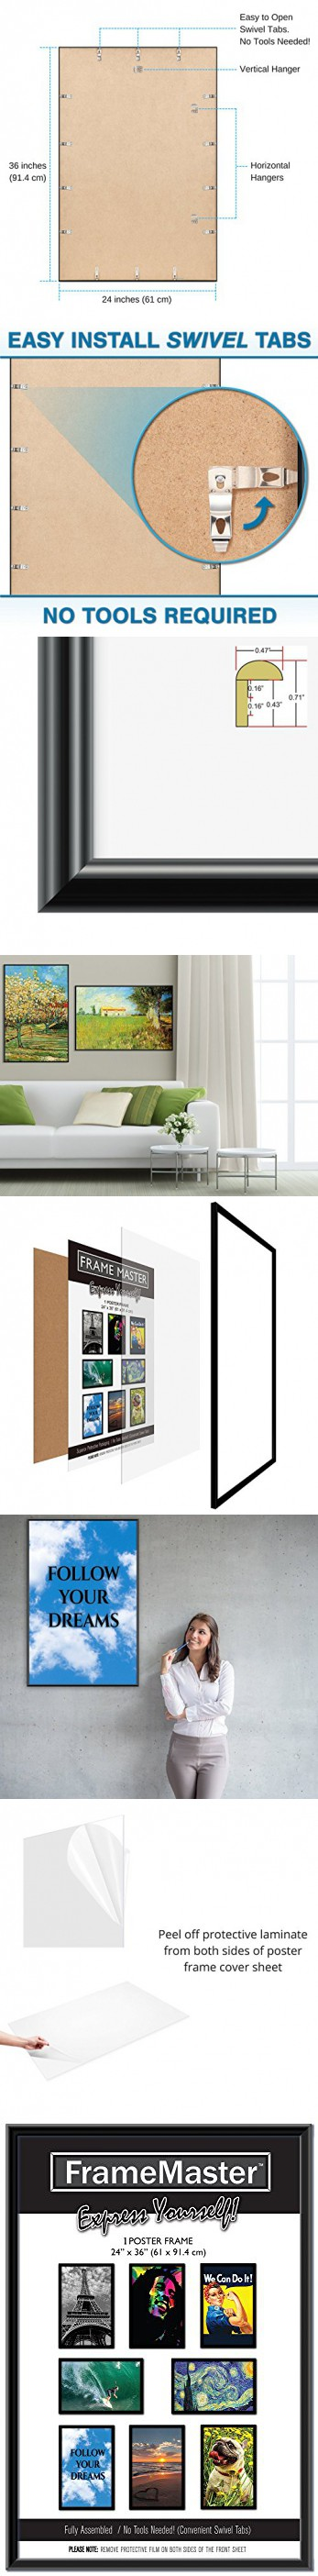 ed893a7c8b0 FrameMaster 24x36 Poster Frame (1-Pack)  Pre-Assembled with Sturdy MDF  Backer Board